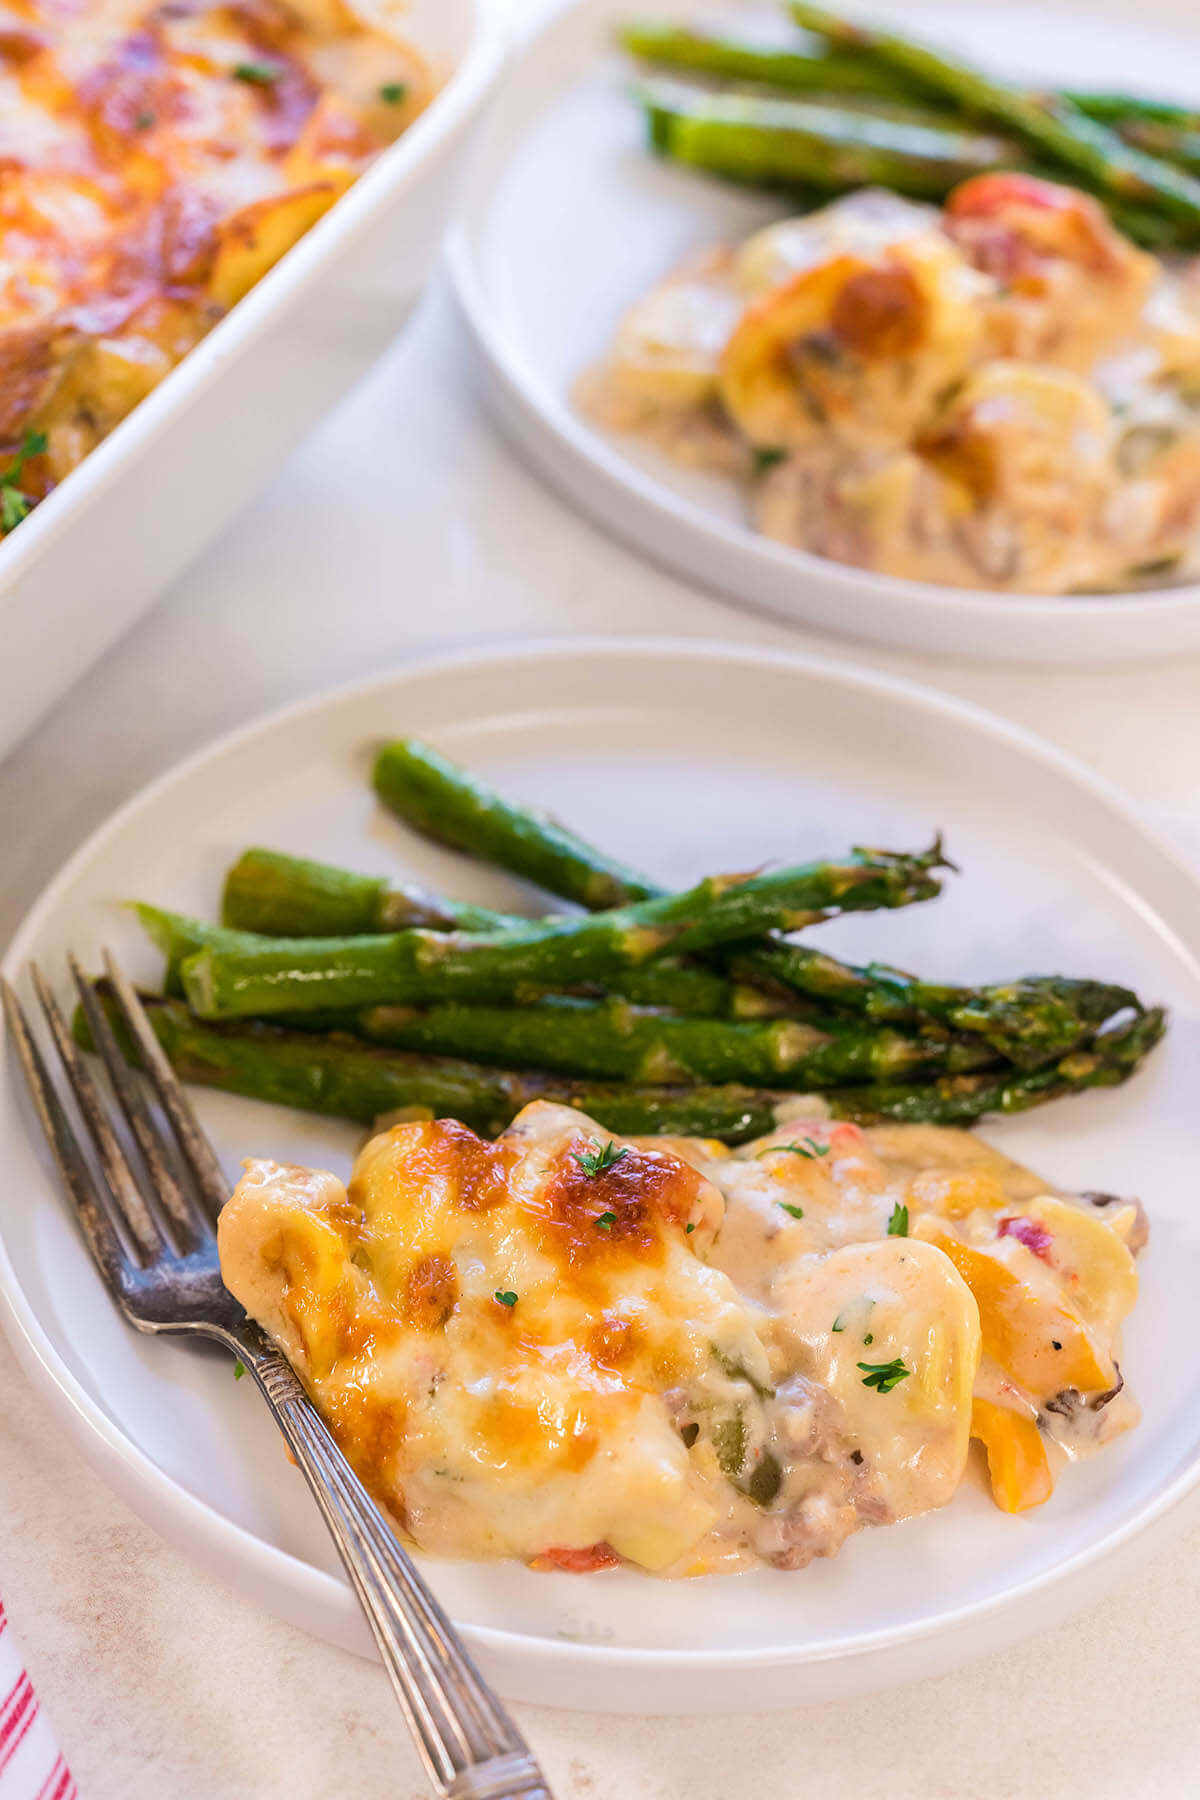 Baked Cheese Pasta with asparagus on white plate with fork.